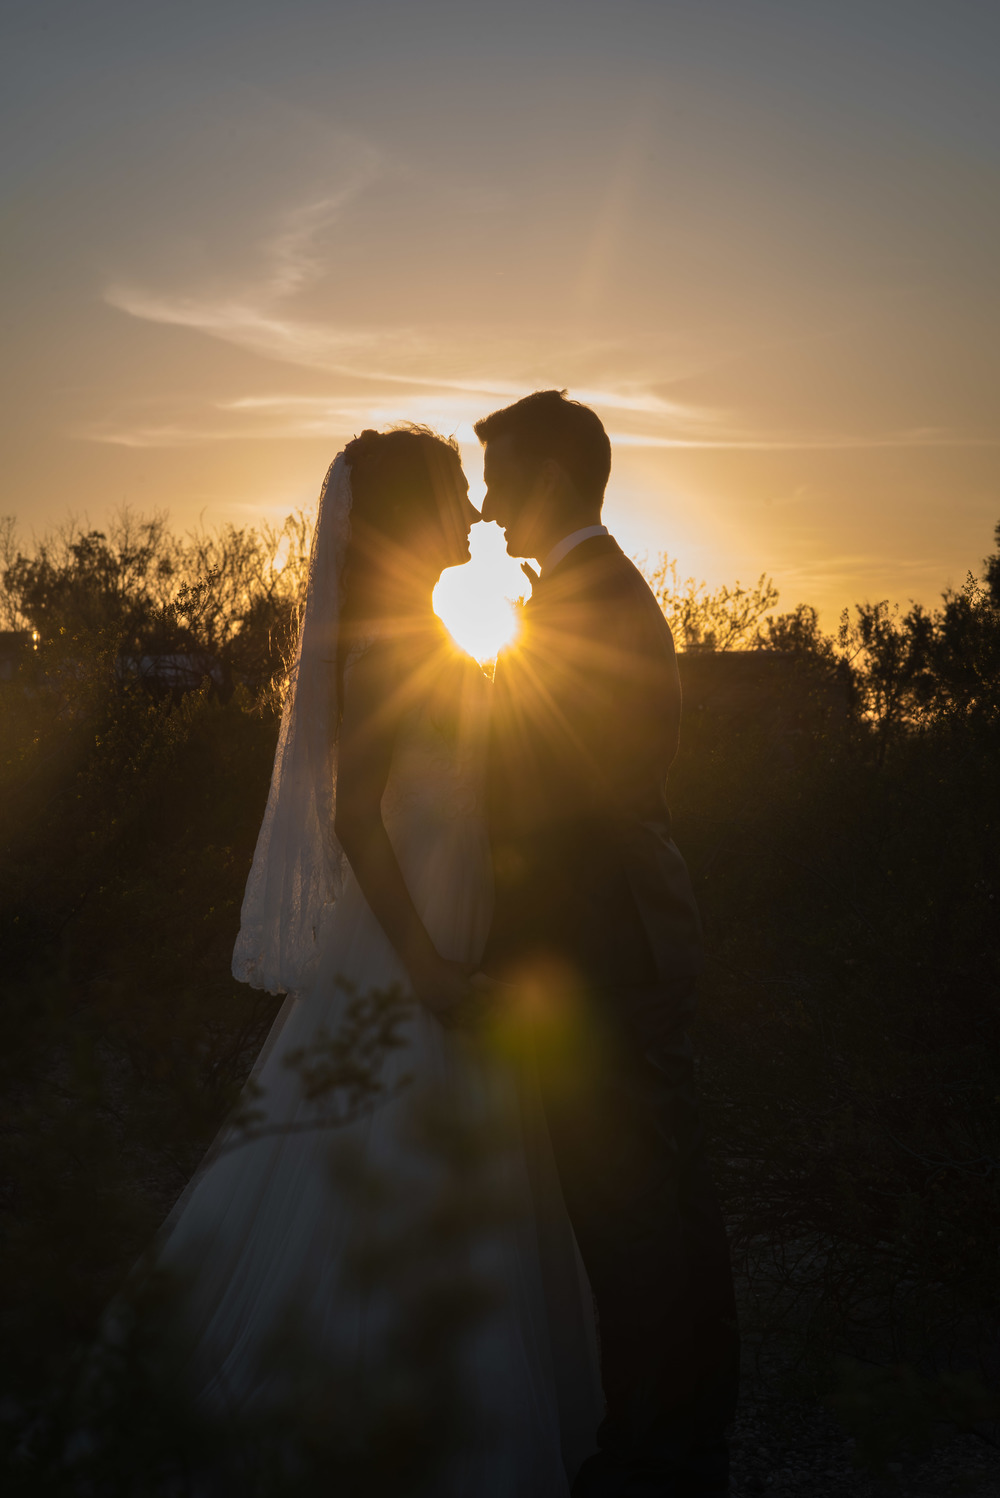 tucson-bride-groom-sunset-silouet